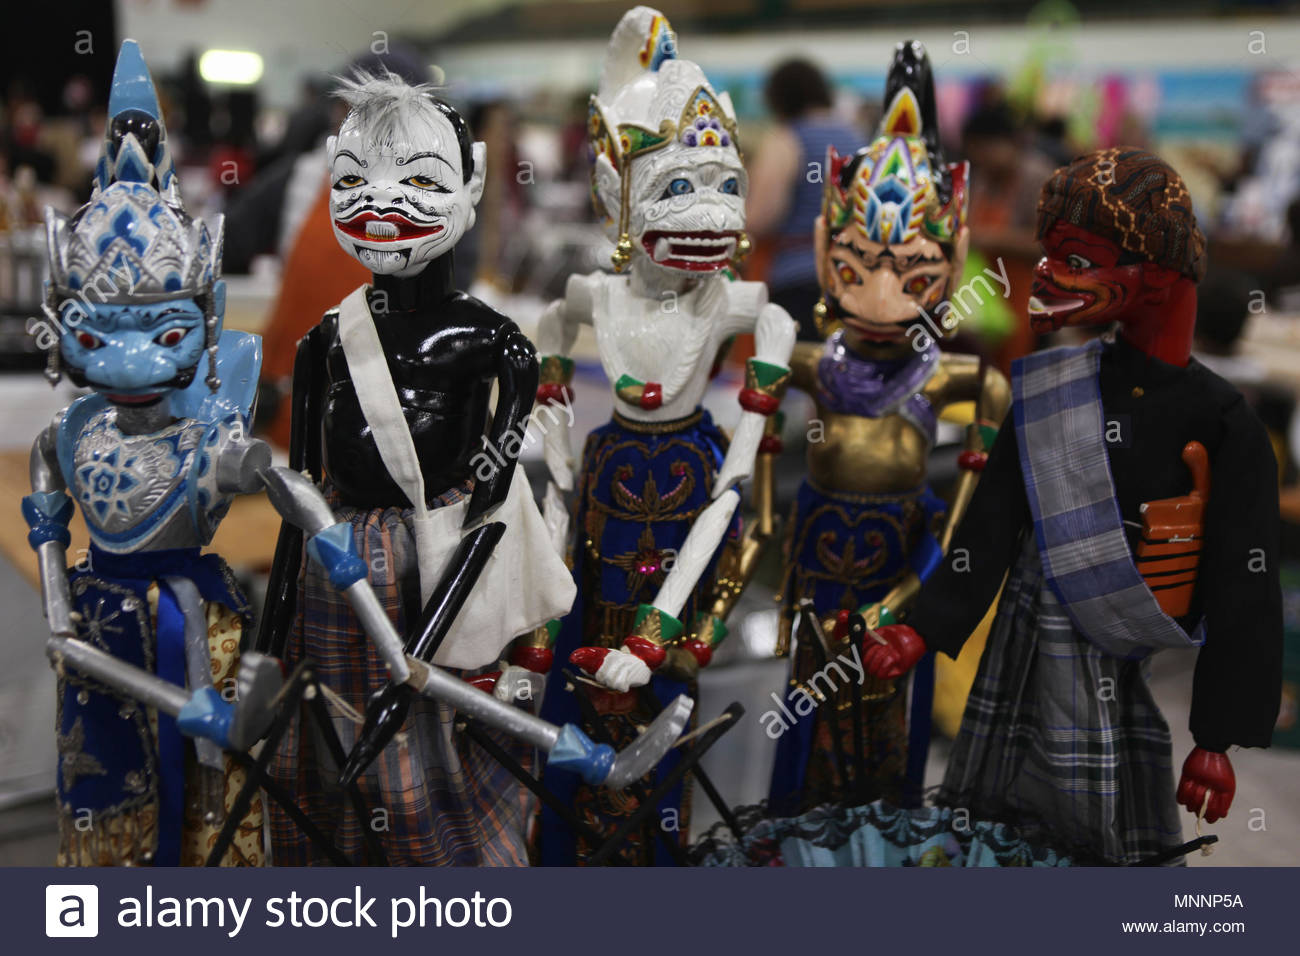 page 3 wayang high resolution stock photography and images alamy https www alamy com indonesian javanese wayang golek puppets image185489846 html